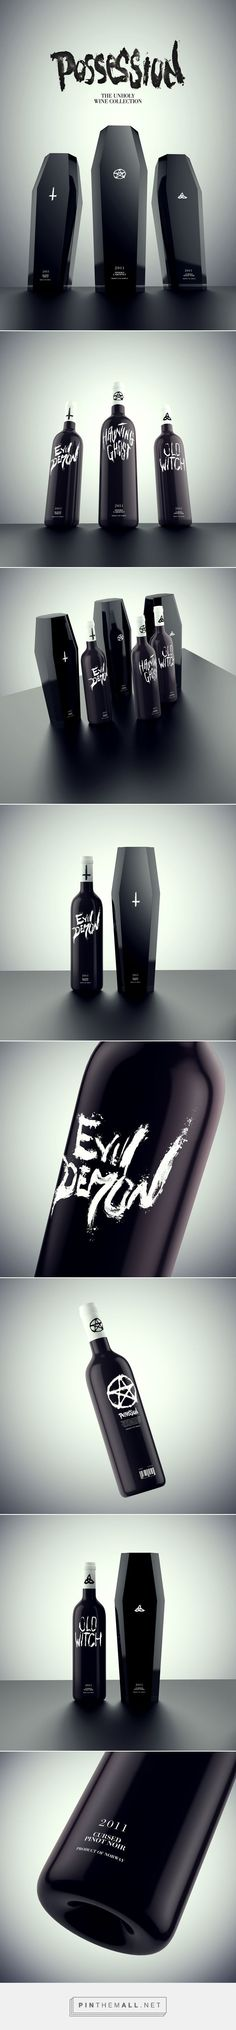 Possession - The Unholy Wine Collection on Behance